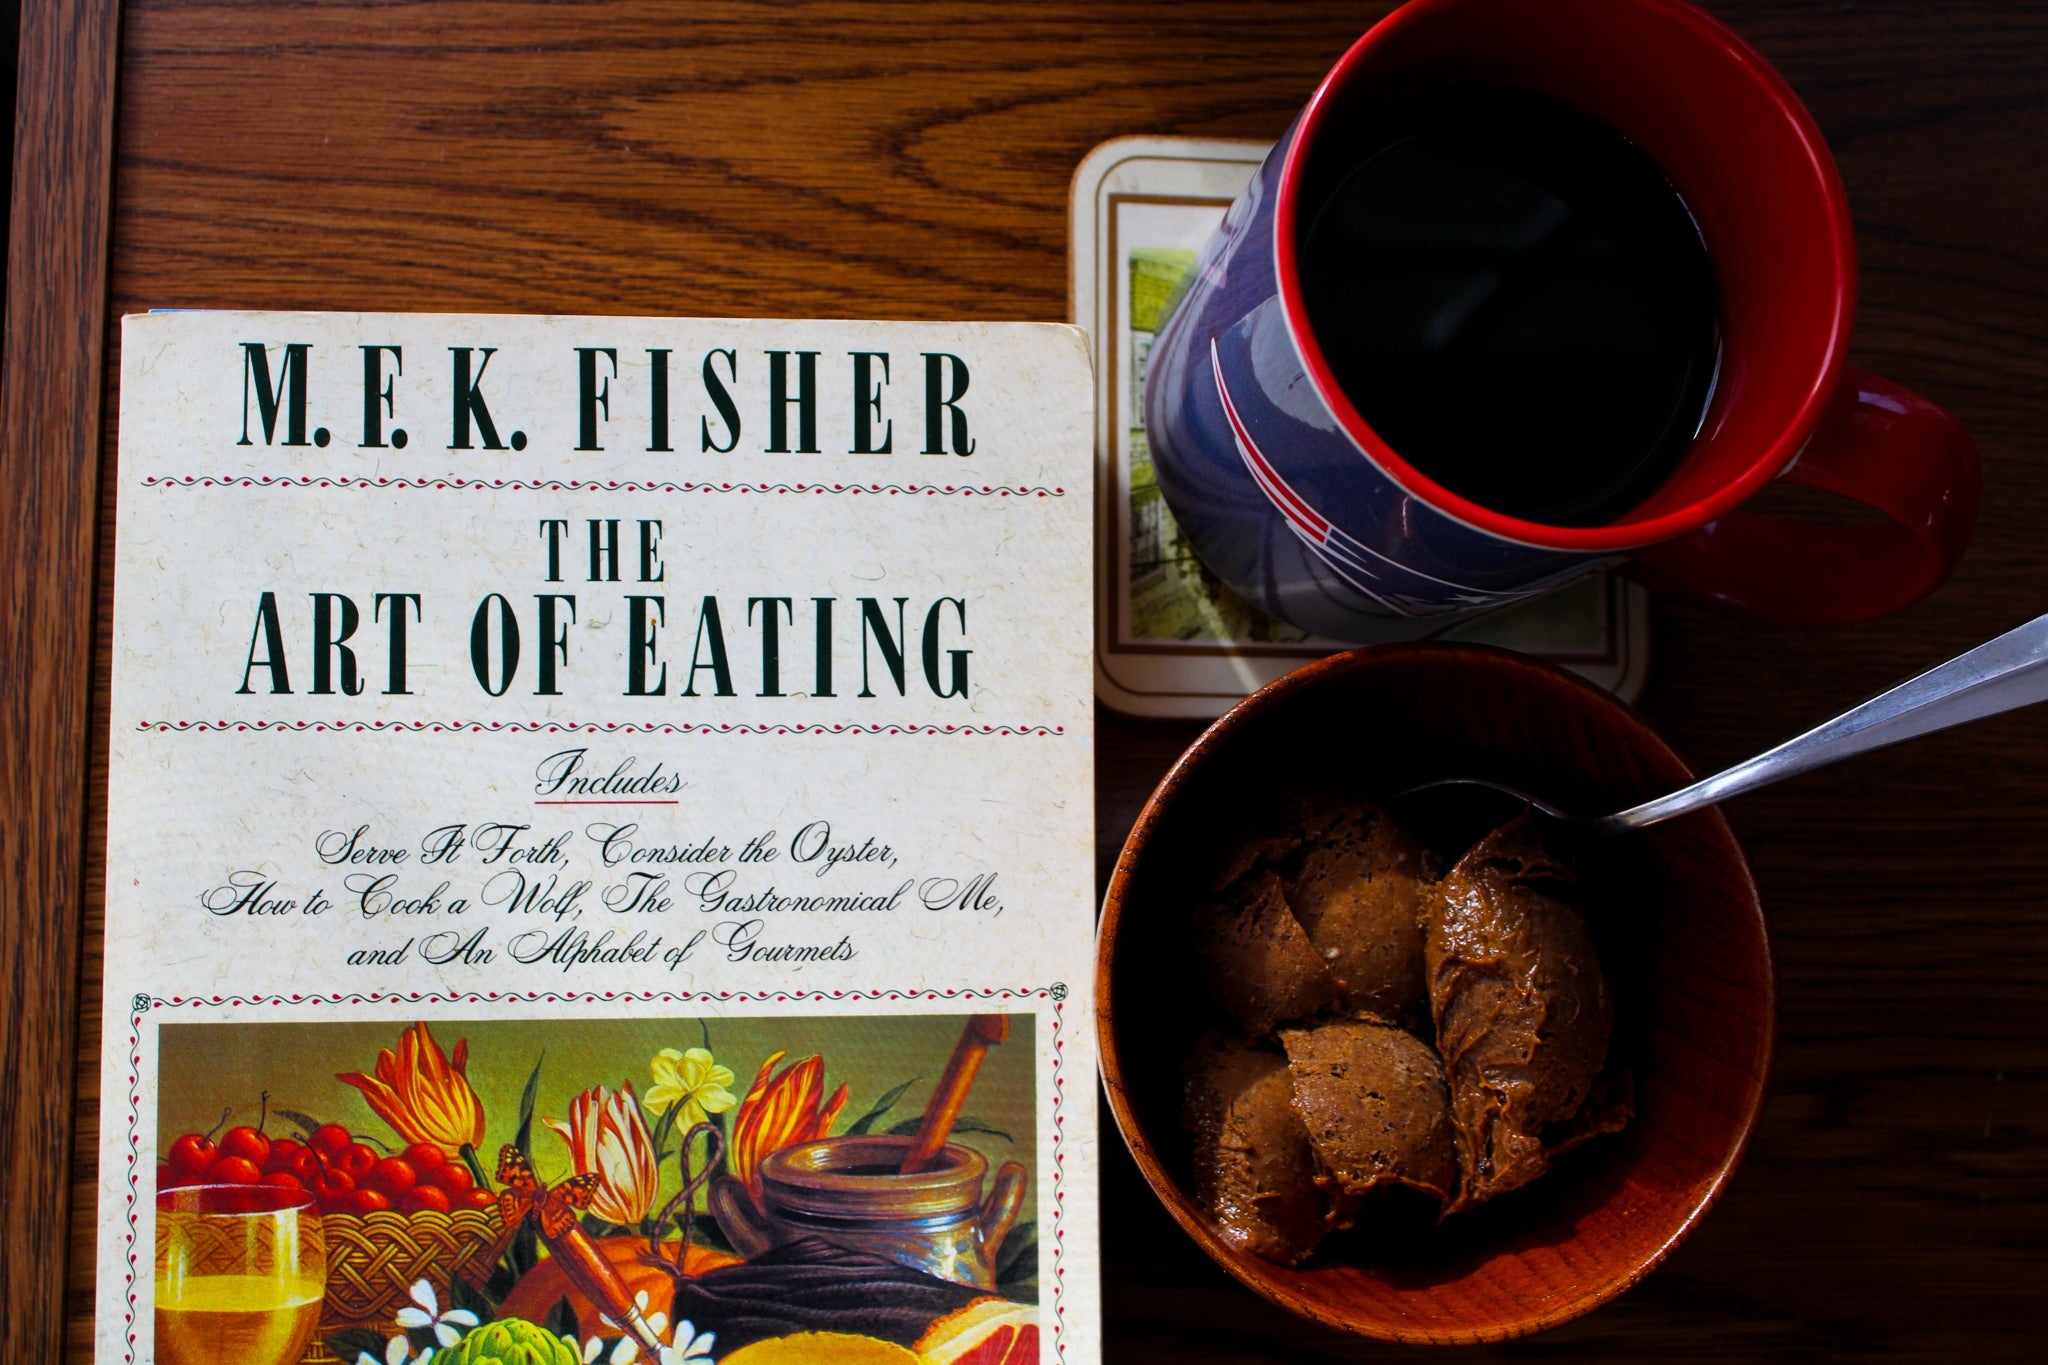 #1 MFK Fisher - The Art of Eating - Sweetness: The Just Book Club (It's Lit.!)